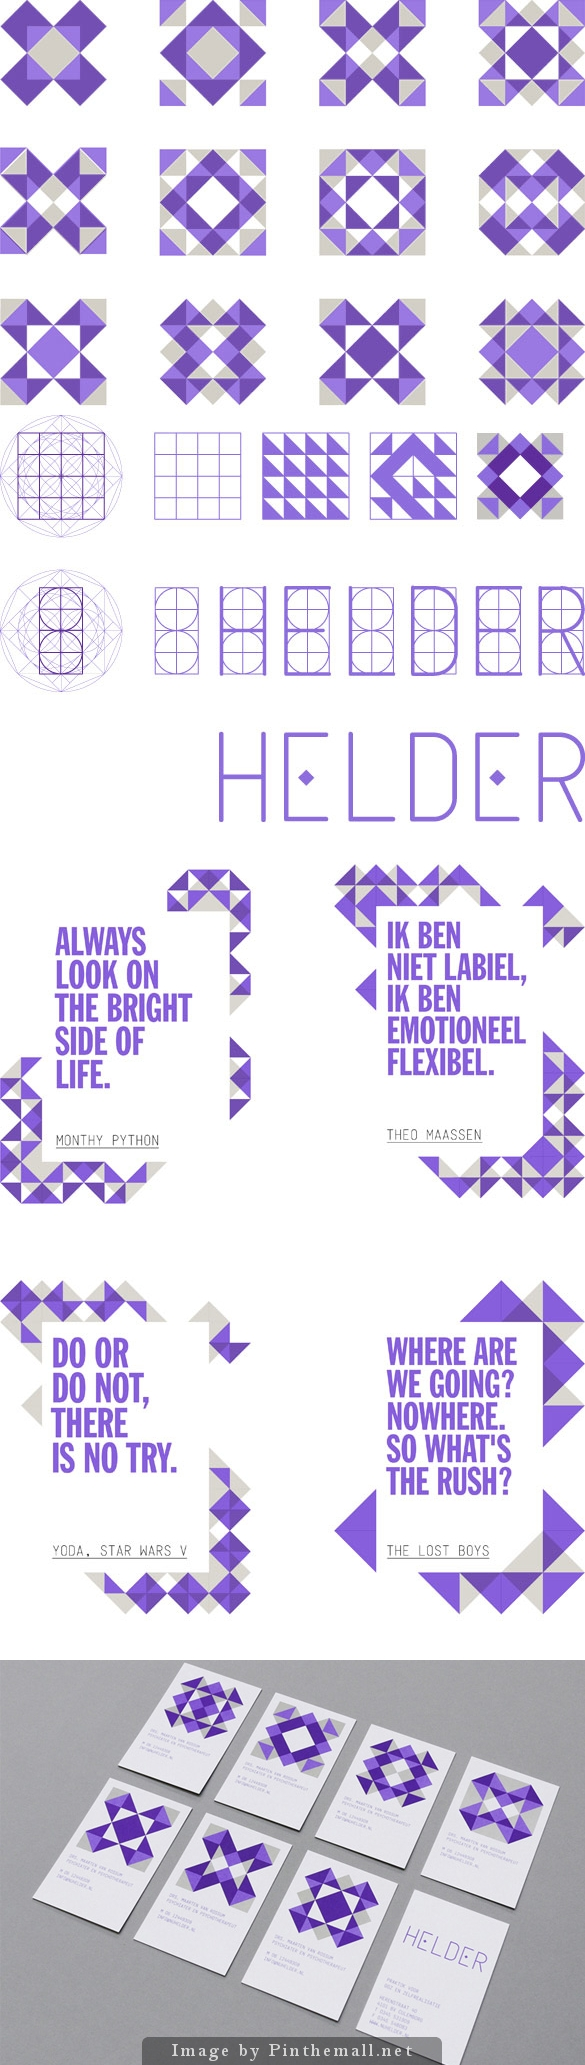 helder identity cooee created via httppinthemall